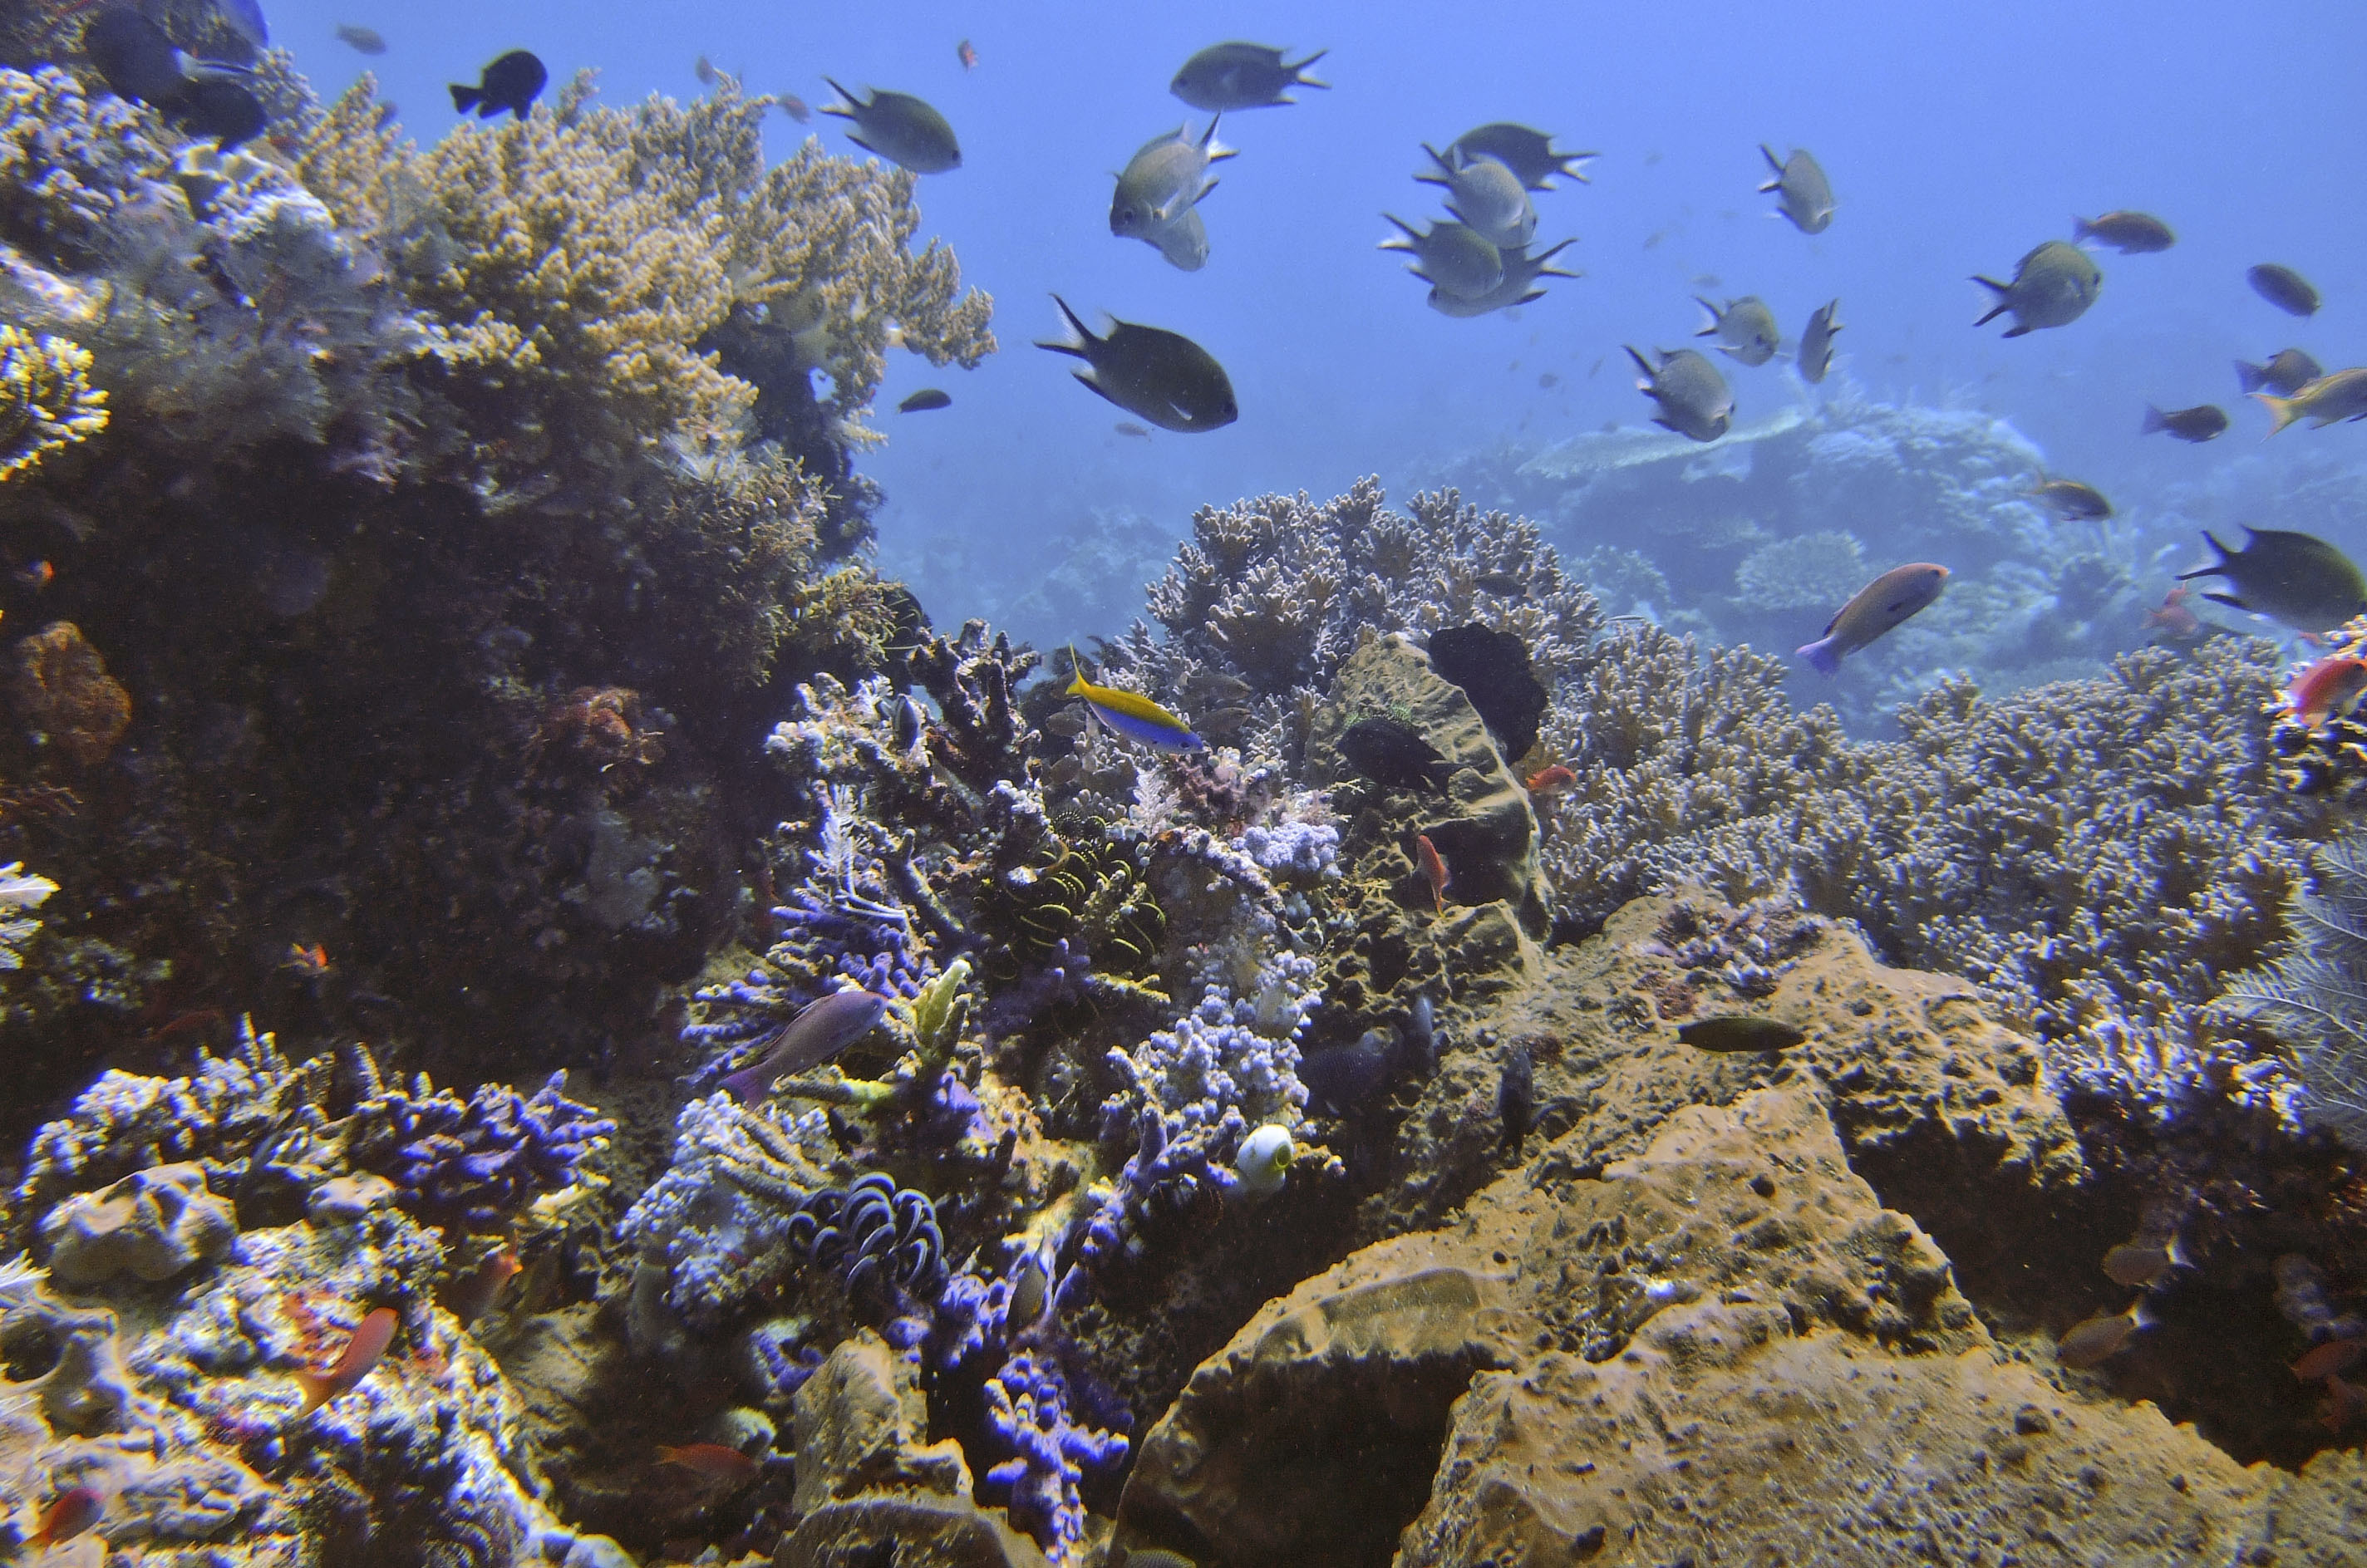 FILE - In this April 30, 2009 file photo fishes swim near coral reefs in Komodo waters, Indonesia. The COP 23 Fiji UN Climate Change Conference in Bonn, Germany, is scheduled to end Friday, Nov. 17 and aims at producing draft rules for implementing the Paris accord. (AP Photo/Dita Alangkara, file)